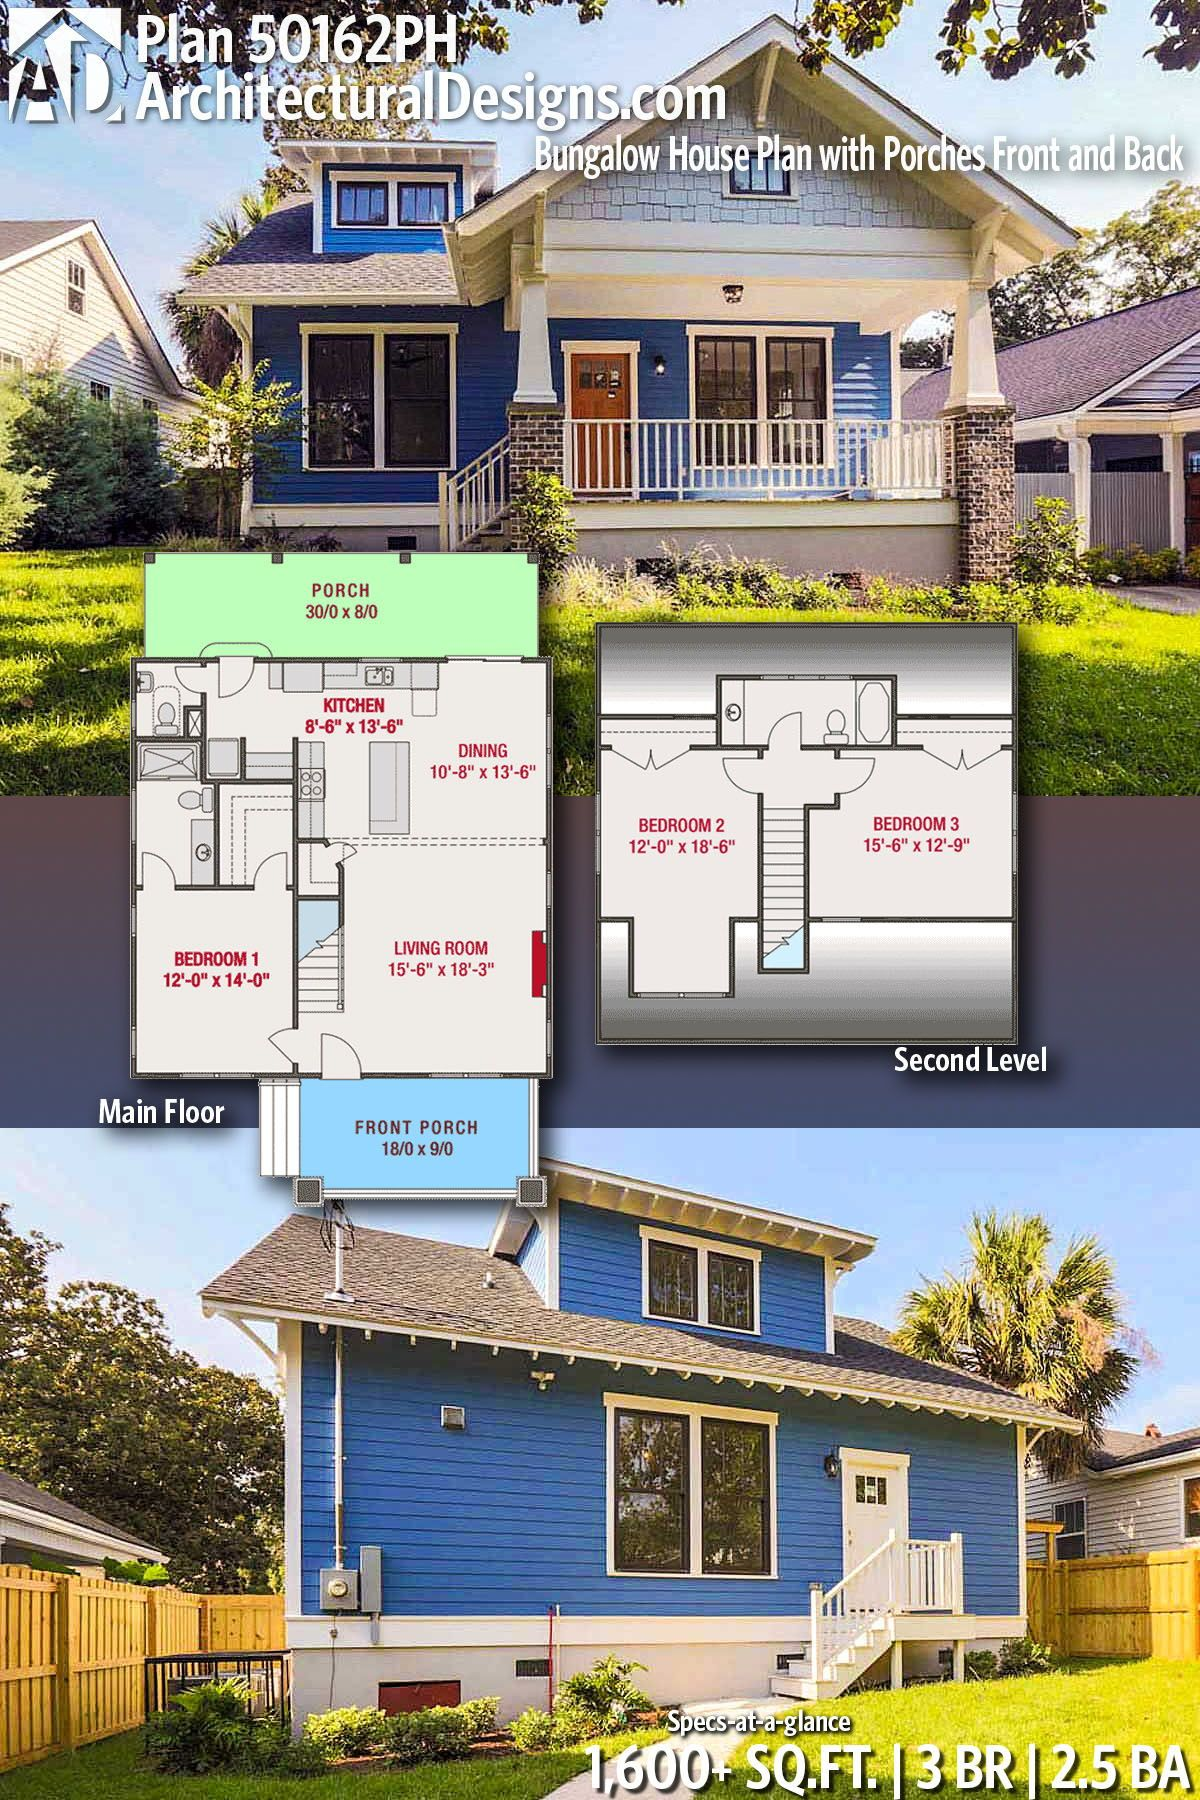 Plan 50162ph Bungalow House Plan With Porches Front And Back House Plans Architectural Design House Plans Porch House Plans